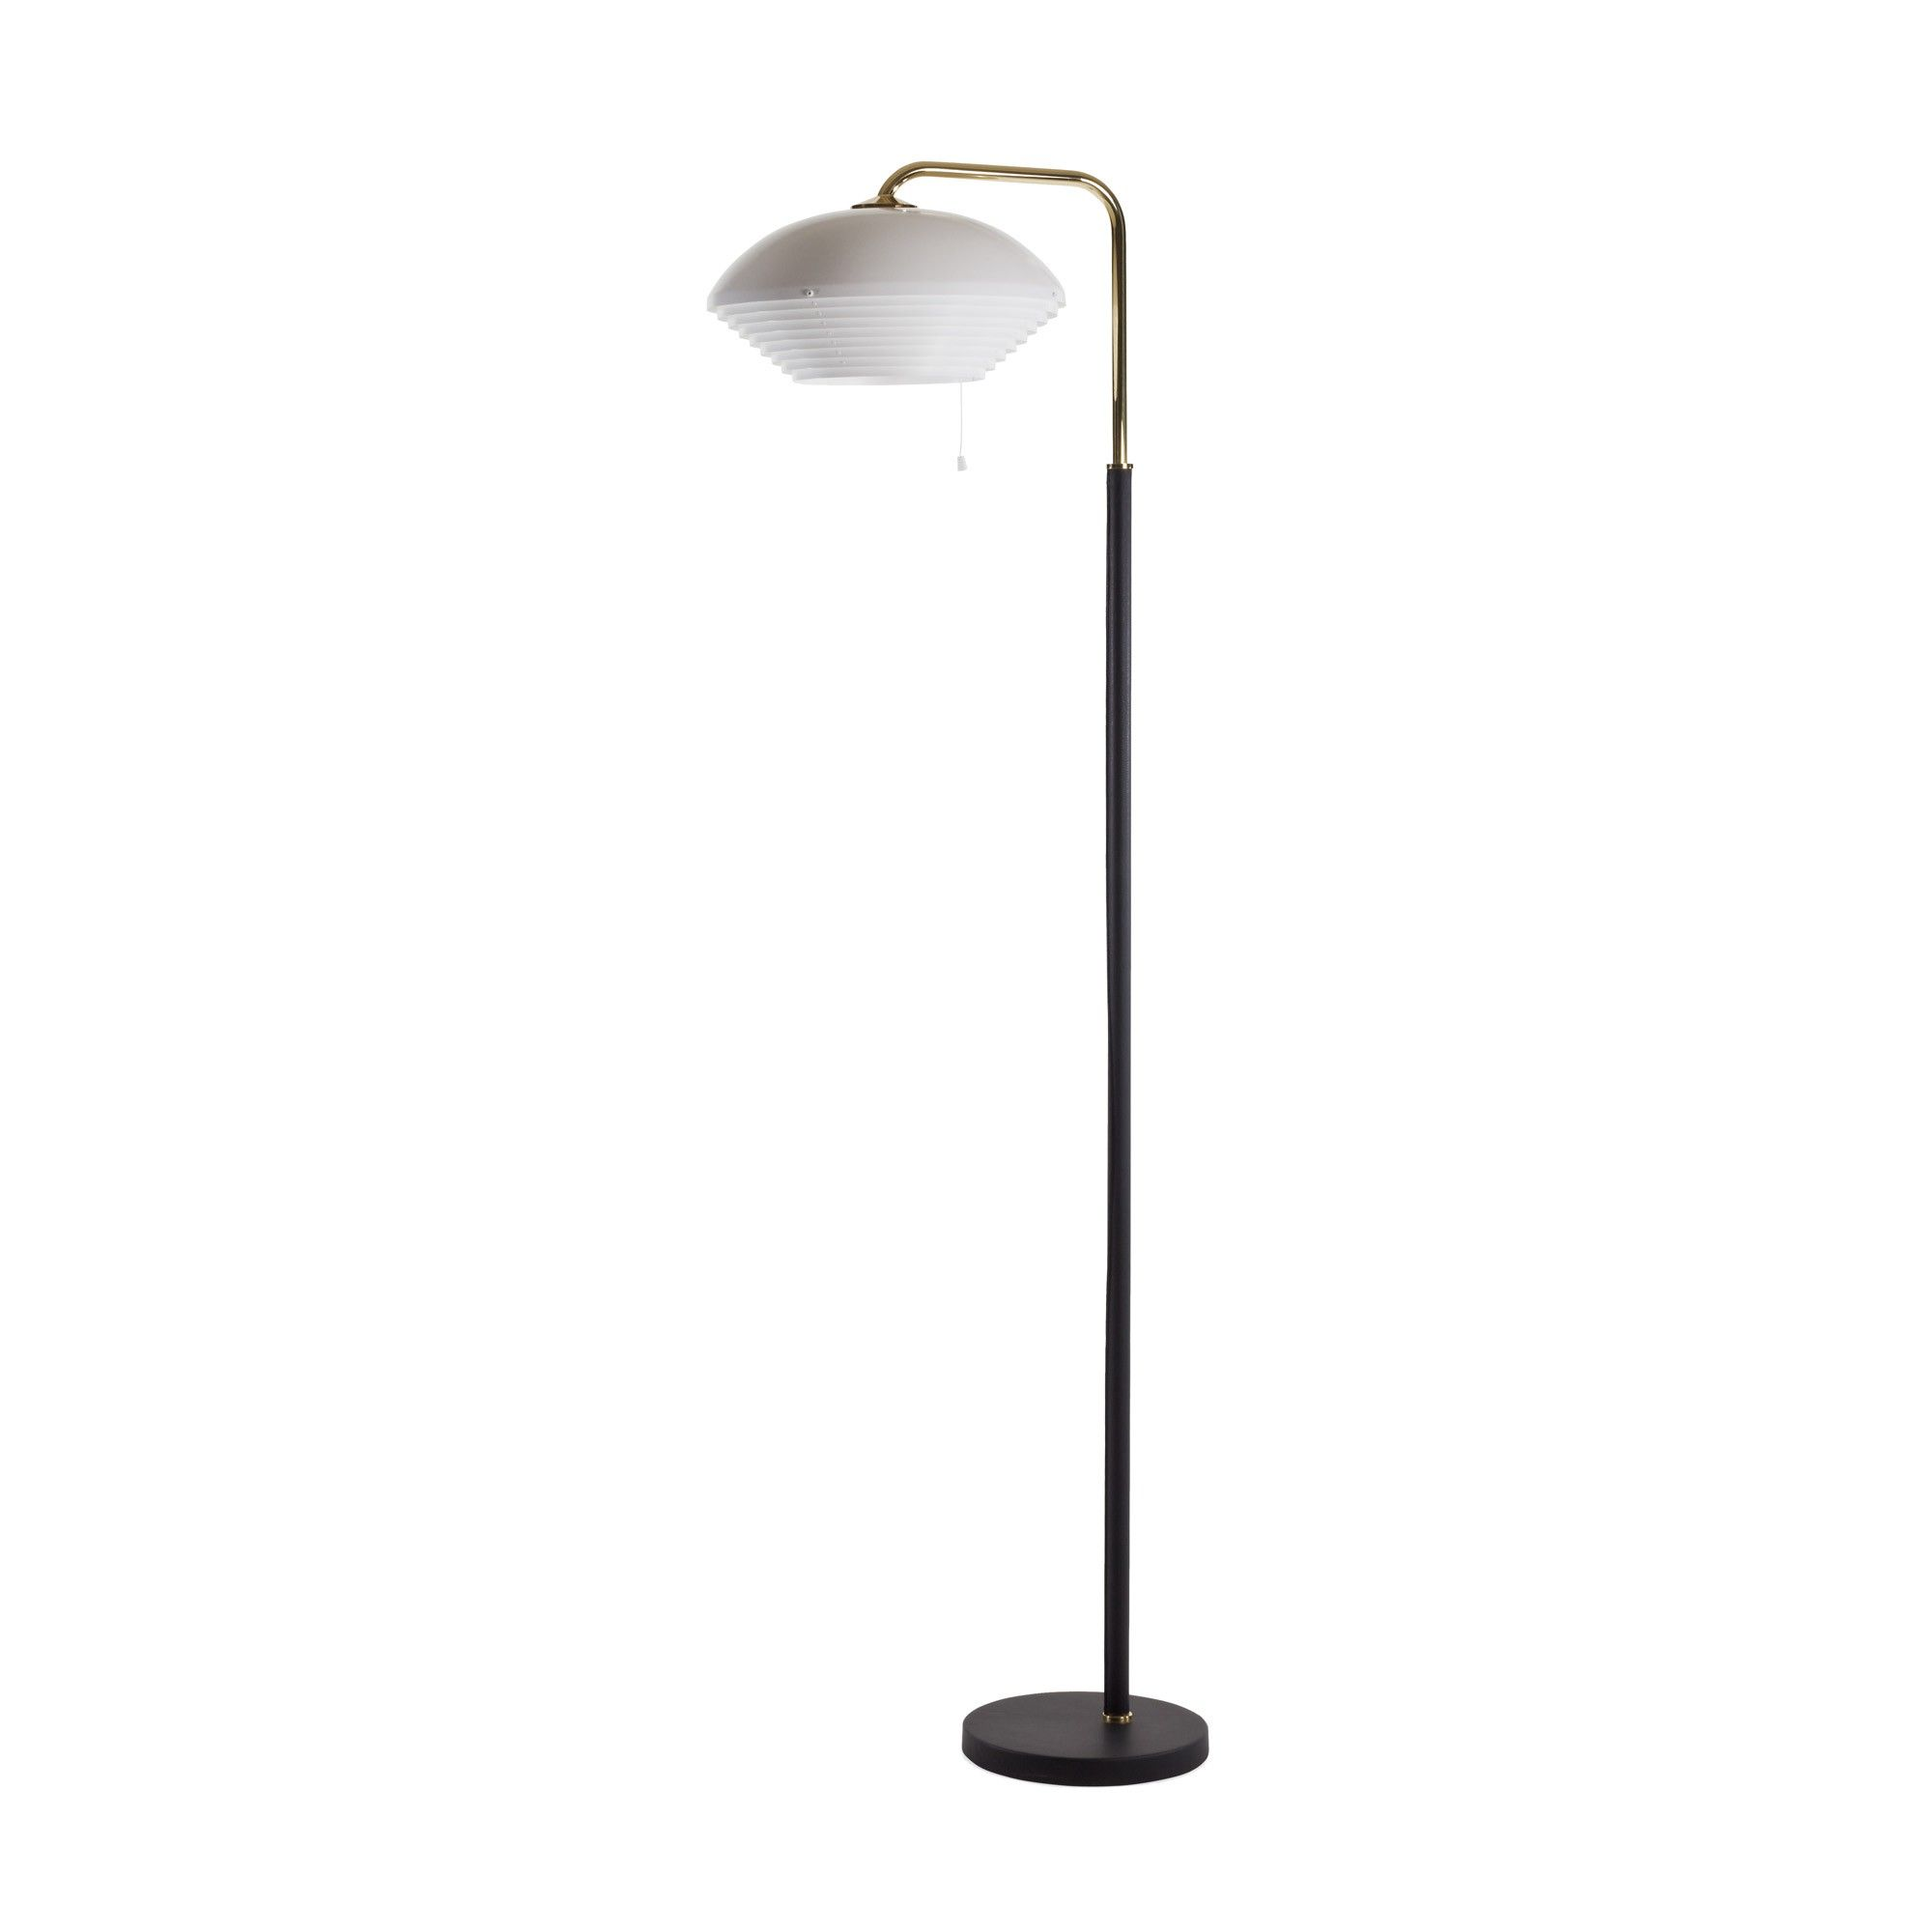 A811 Floor Lamp Scandinavian Floor Lamps Lamp Floor Lamp Lighting